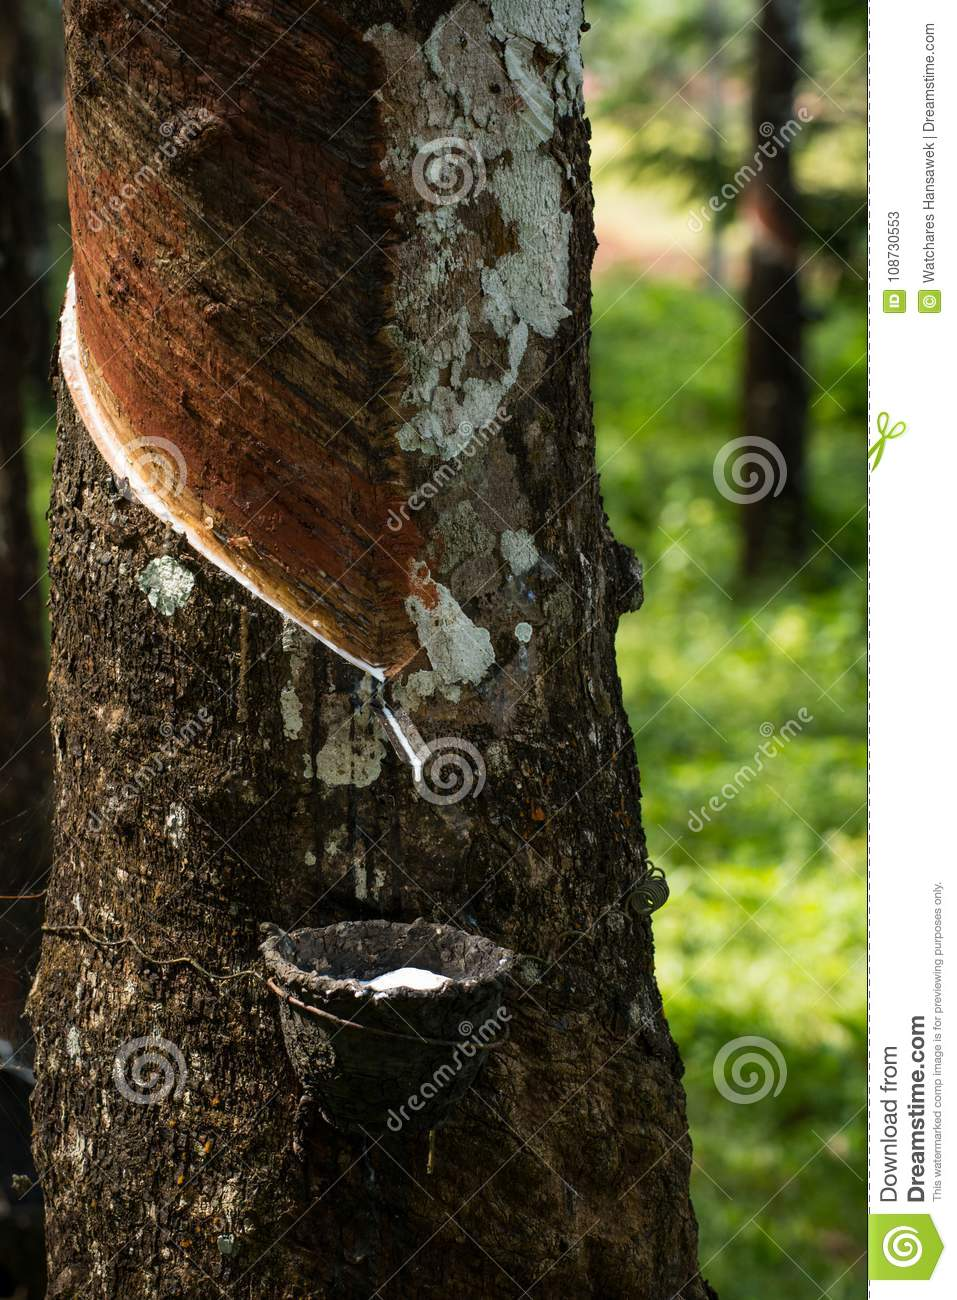 Tapping Rubber, Rubber Plantation Lifes, Rubber Plantation